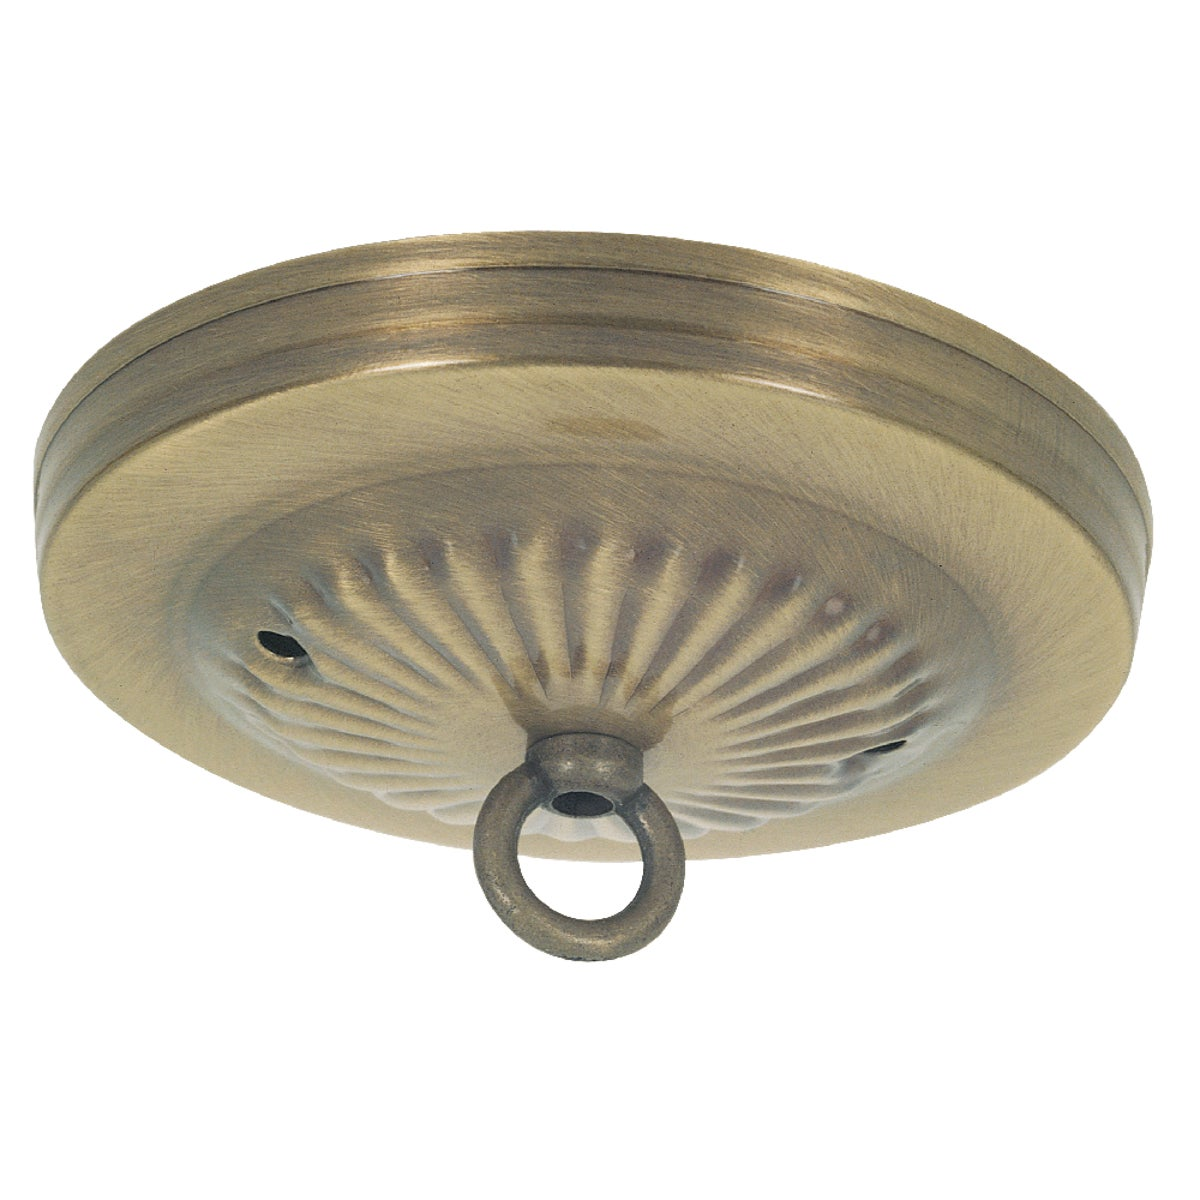 ANTIQUE BRASS CANOPY KIT - 70053 by Westinghouse Lightng